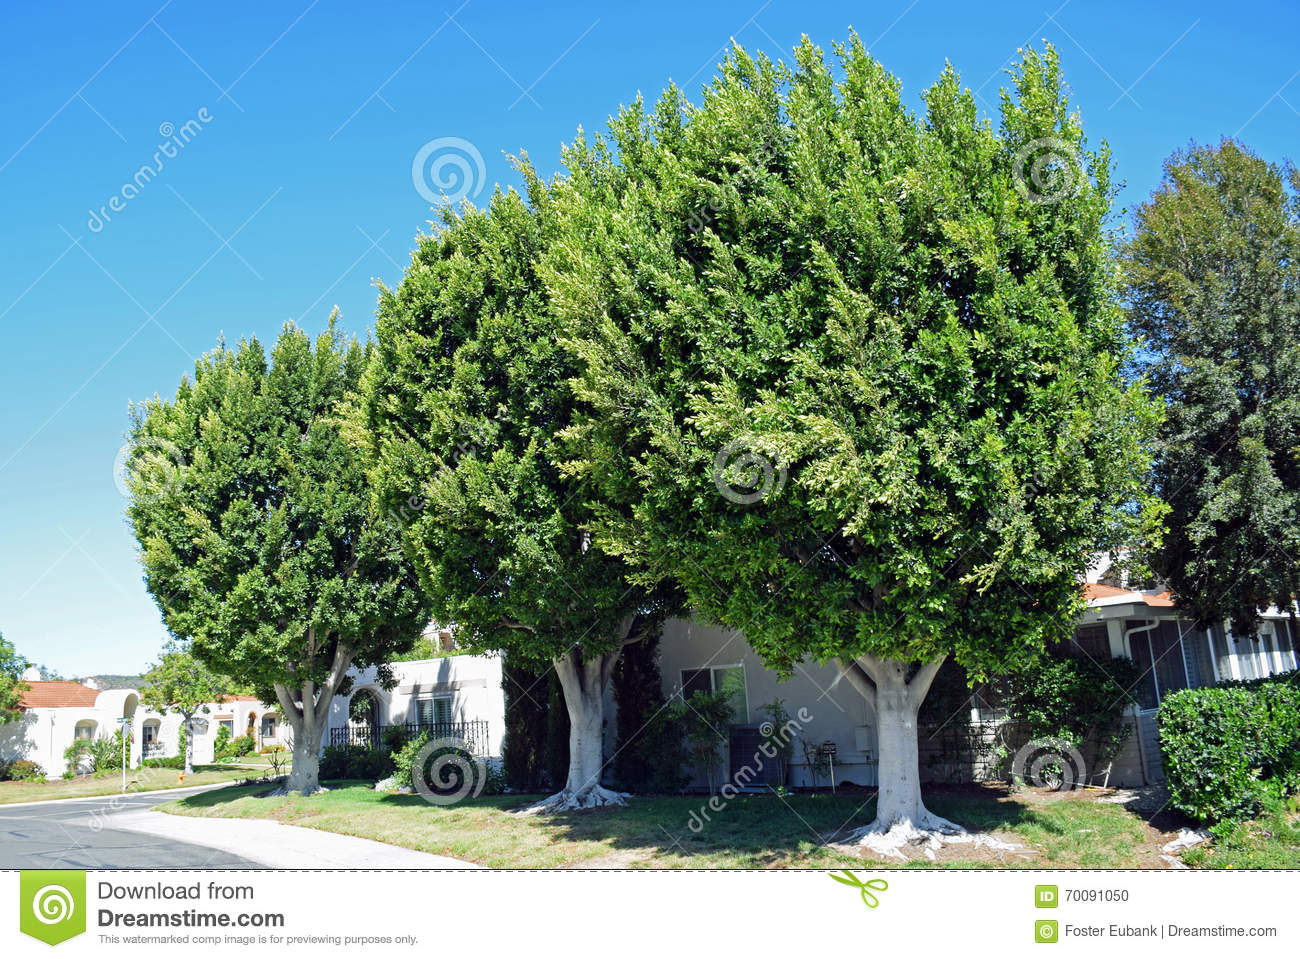 california ficus genus laguna mature tree - Ficus Trees